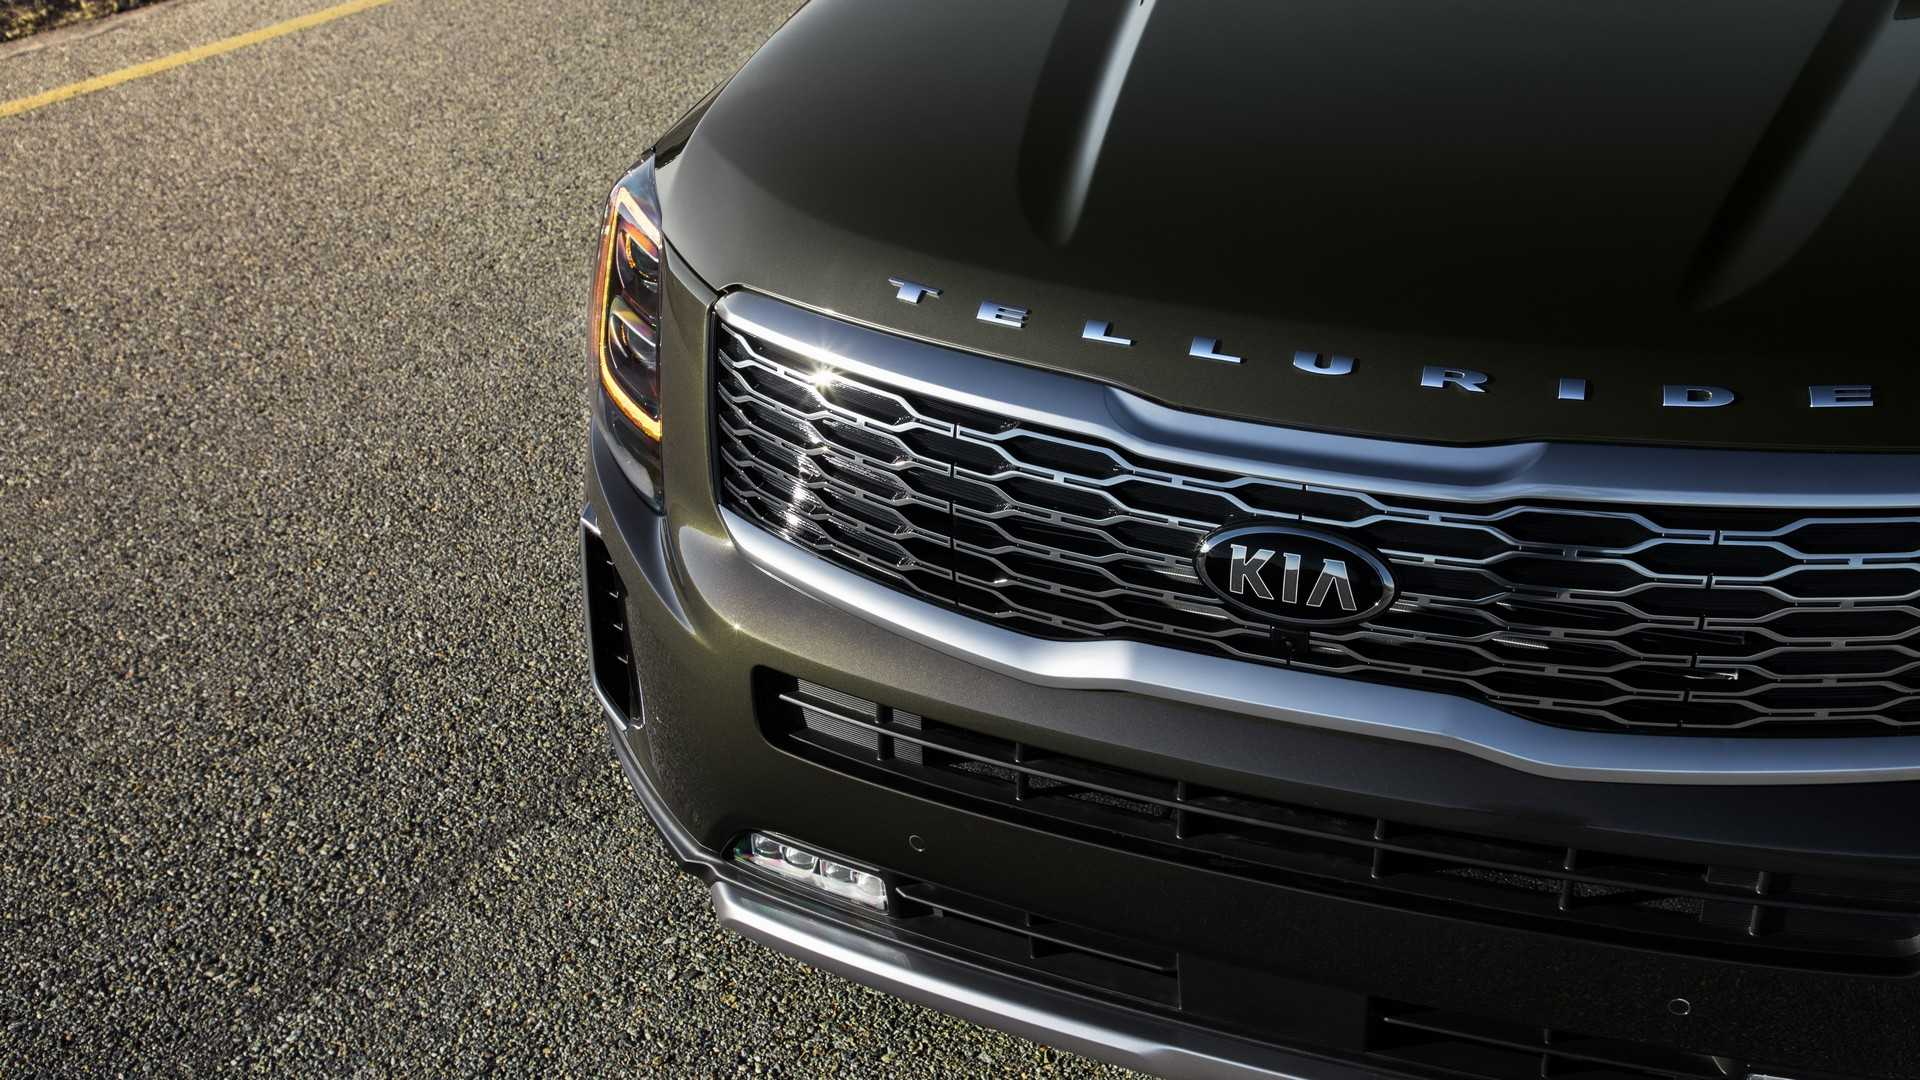 30 New Kia New Truck 2020 Redesign and Concept by Kia New Truck 2020